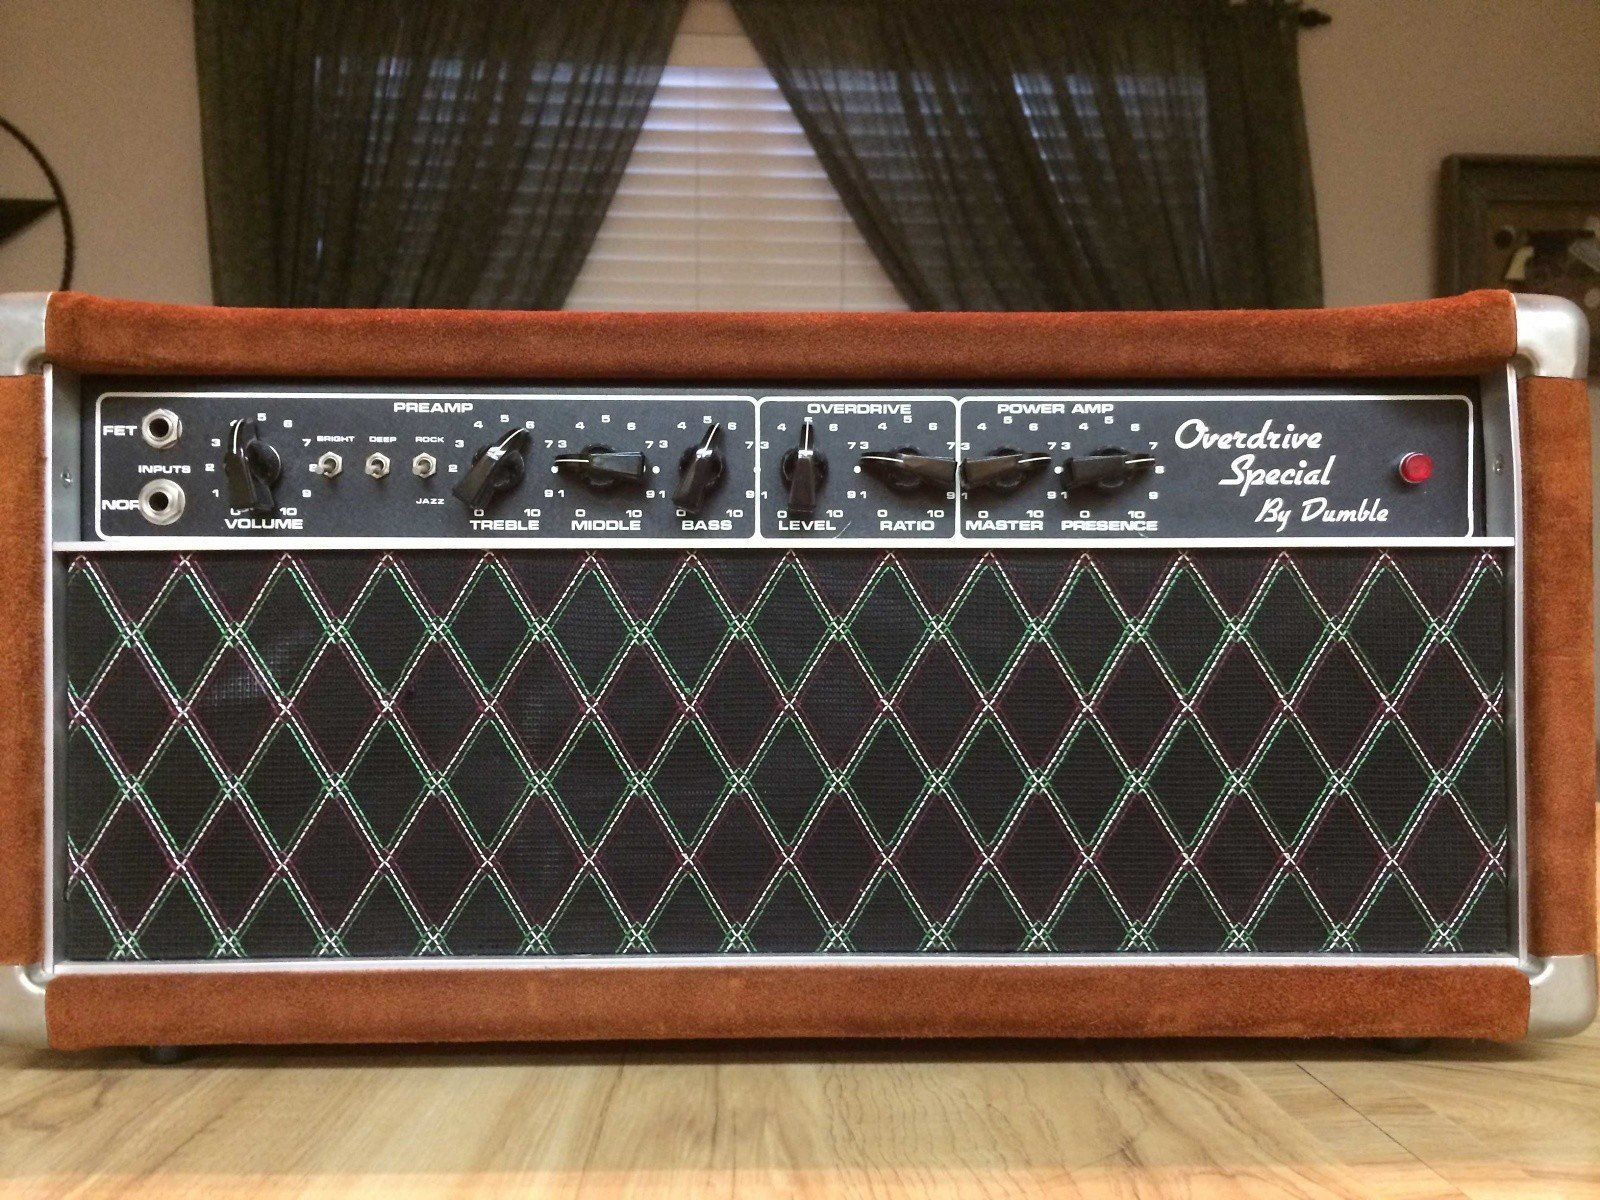 We are so very blessed to offer this legendary amp direct